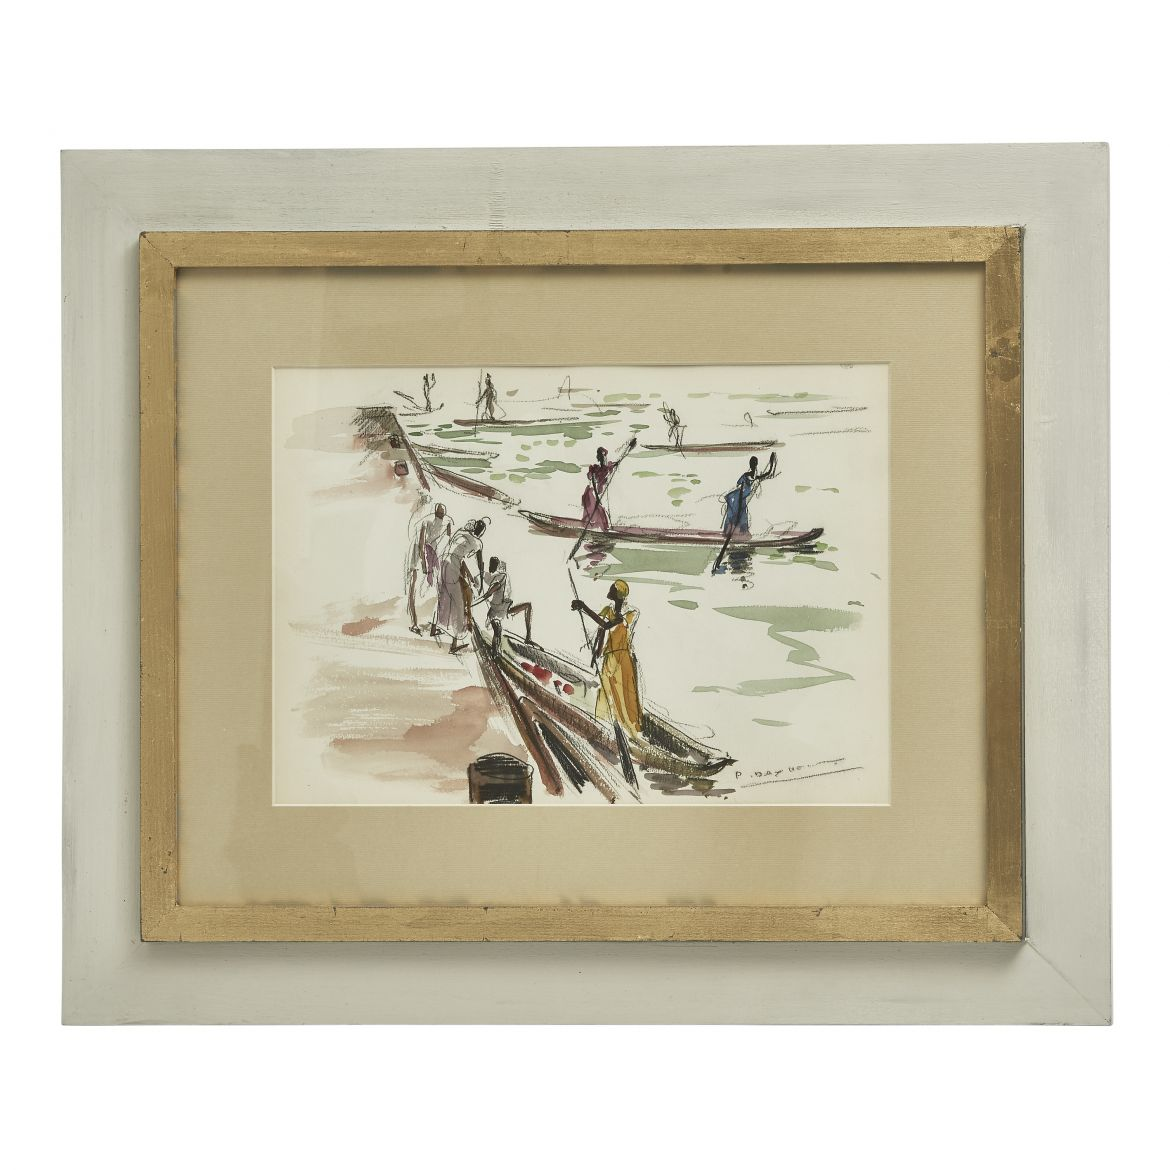 African Fishing Watercolour By Paul Daxhelet